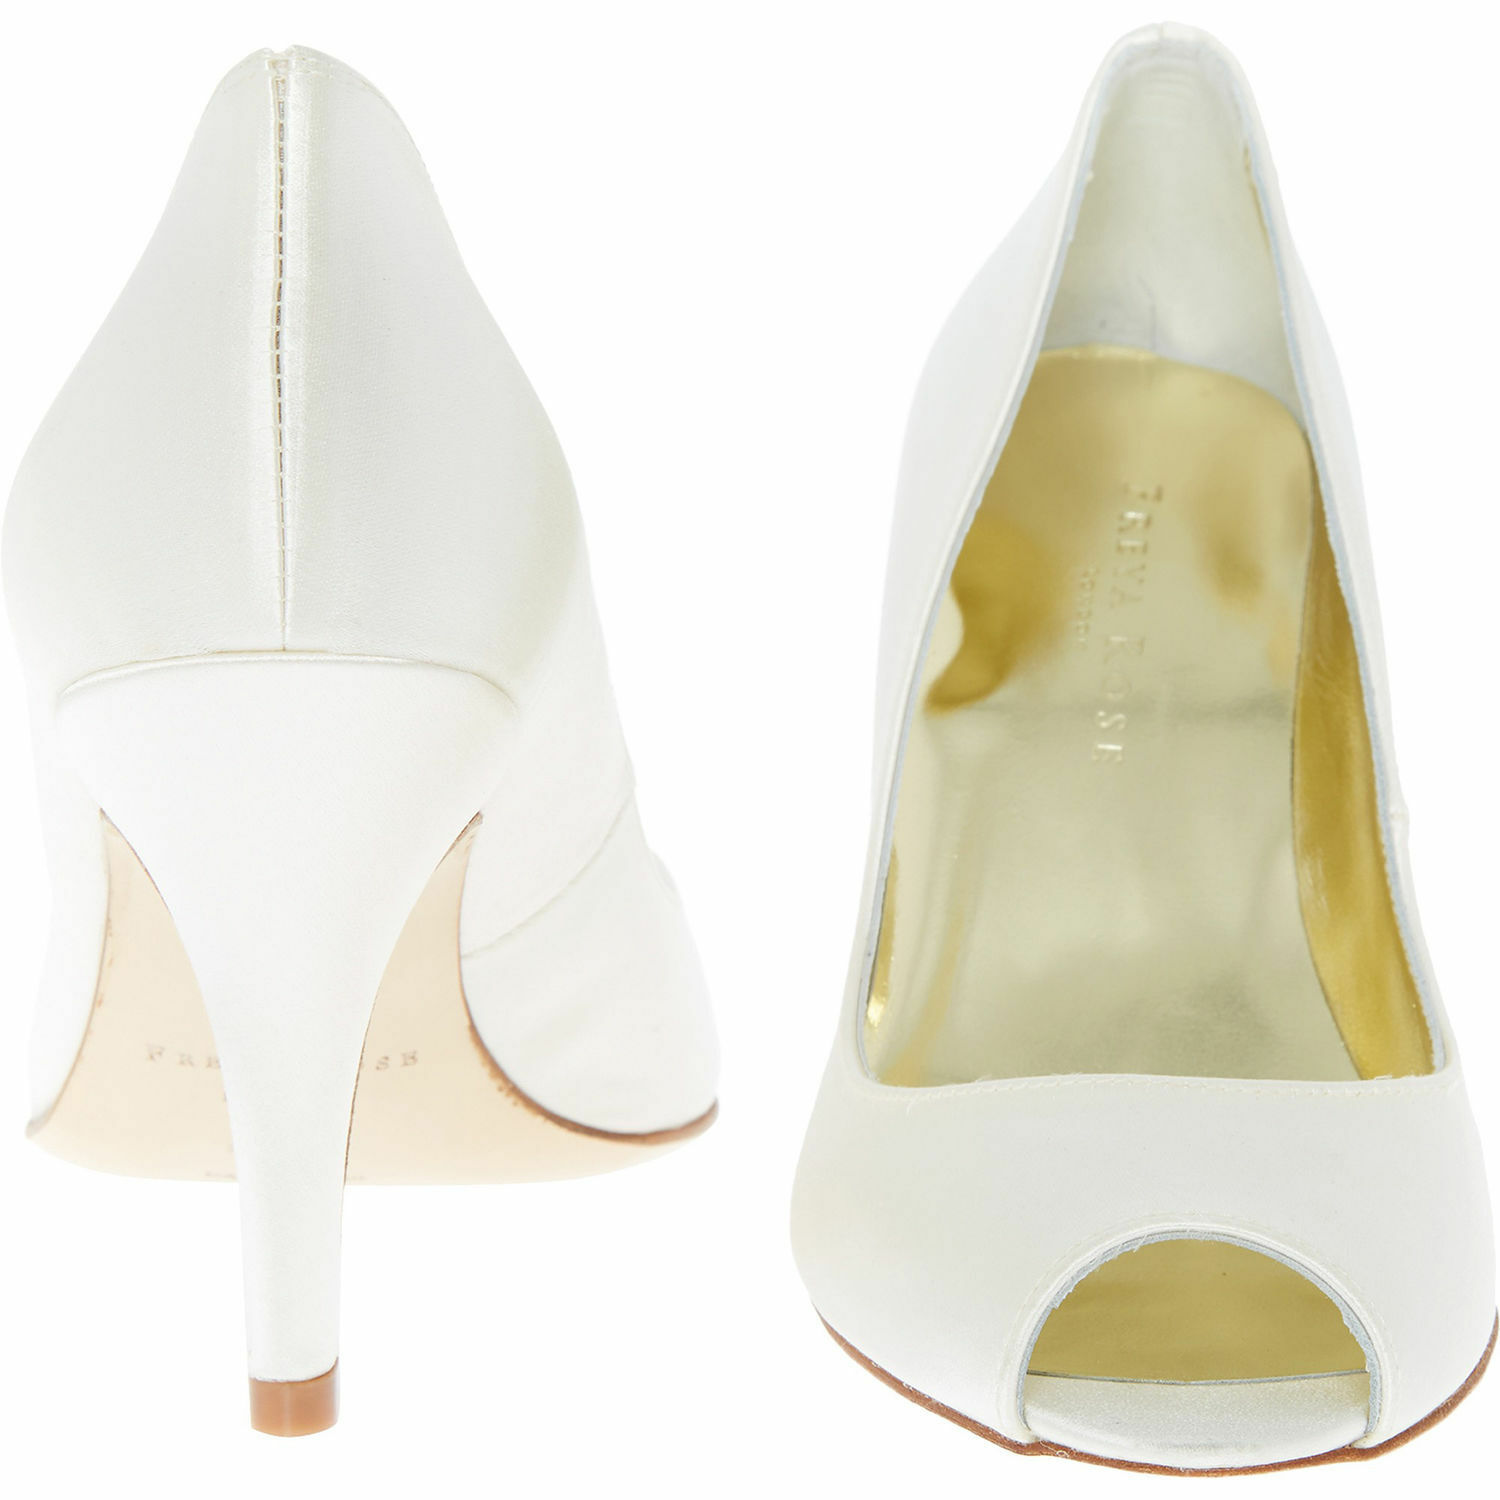 New FREYA ROSE Della Ivory Silk Weiß Weiß Weiß Satin Peep Toe Heels Evening Schuhes UK 2.5 564500